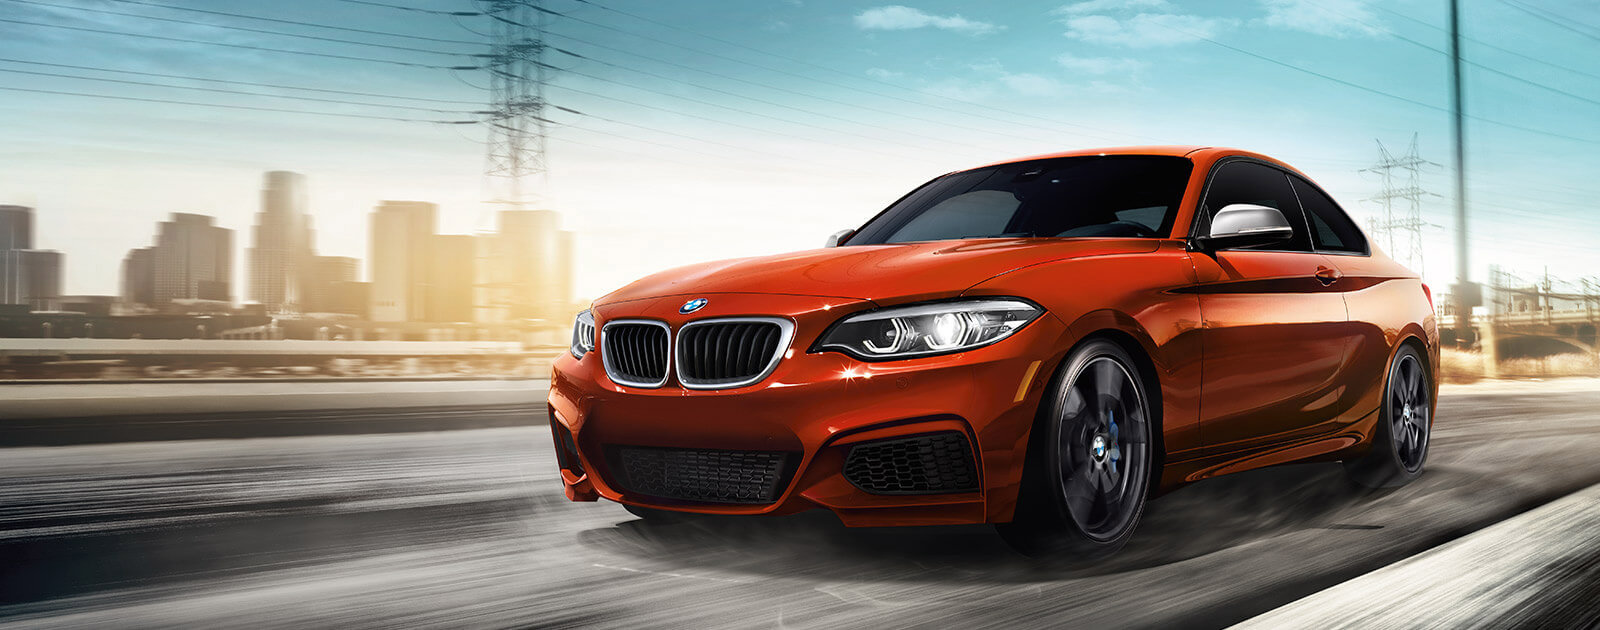 New BMW Series Lease Offers Prices Calabasas CA - Bmw 2 series coupe lease